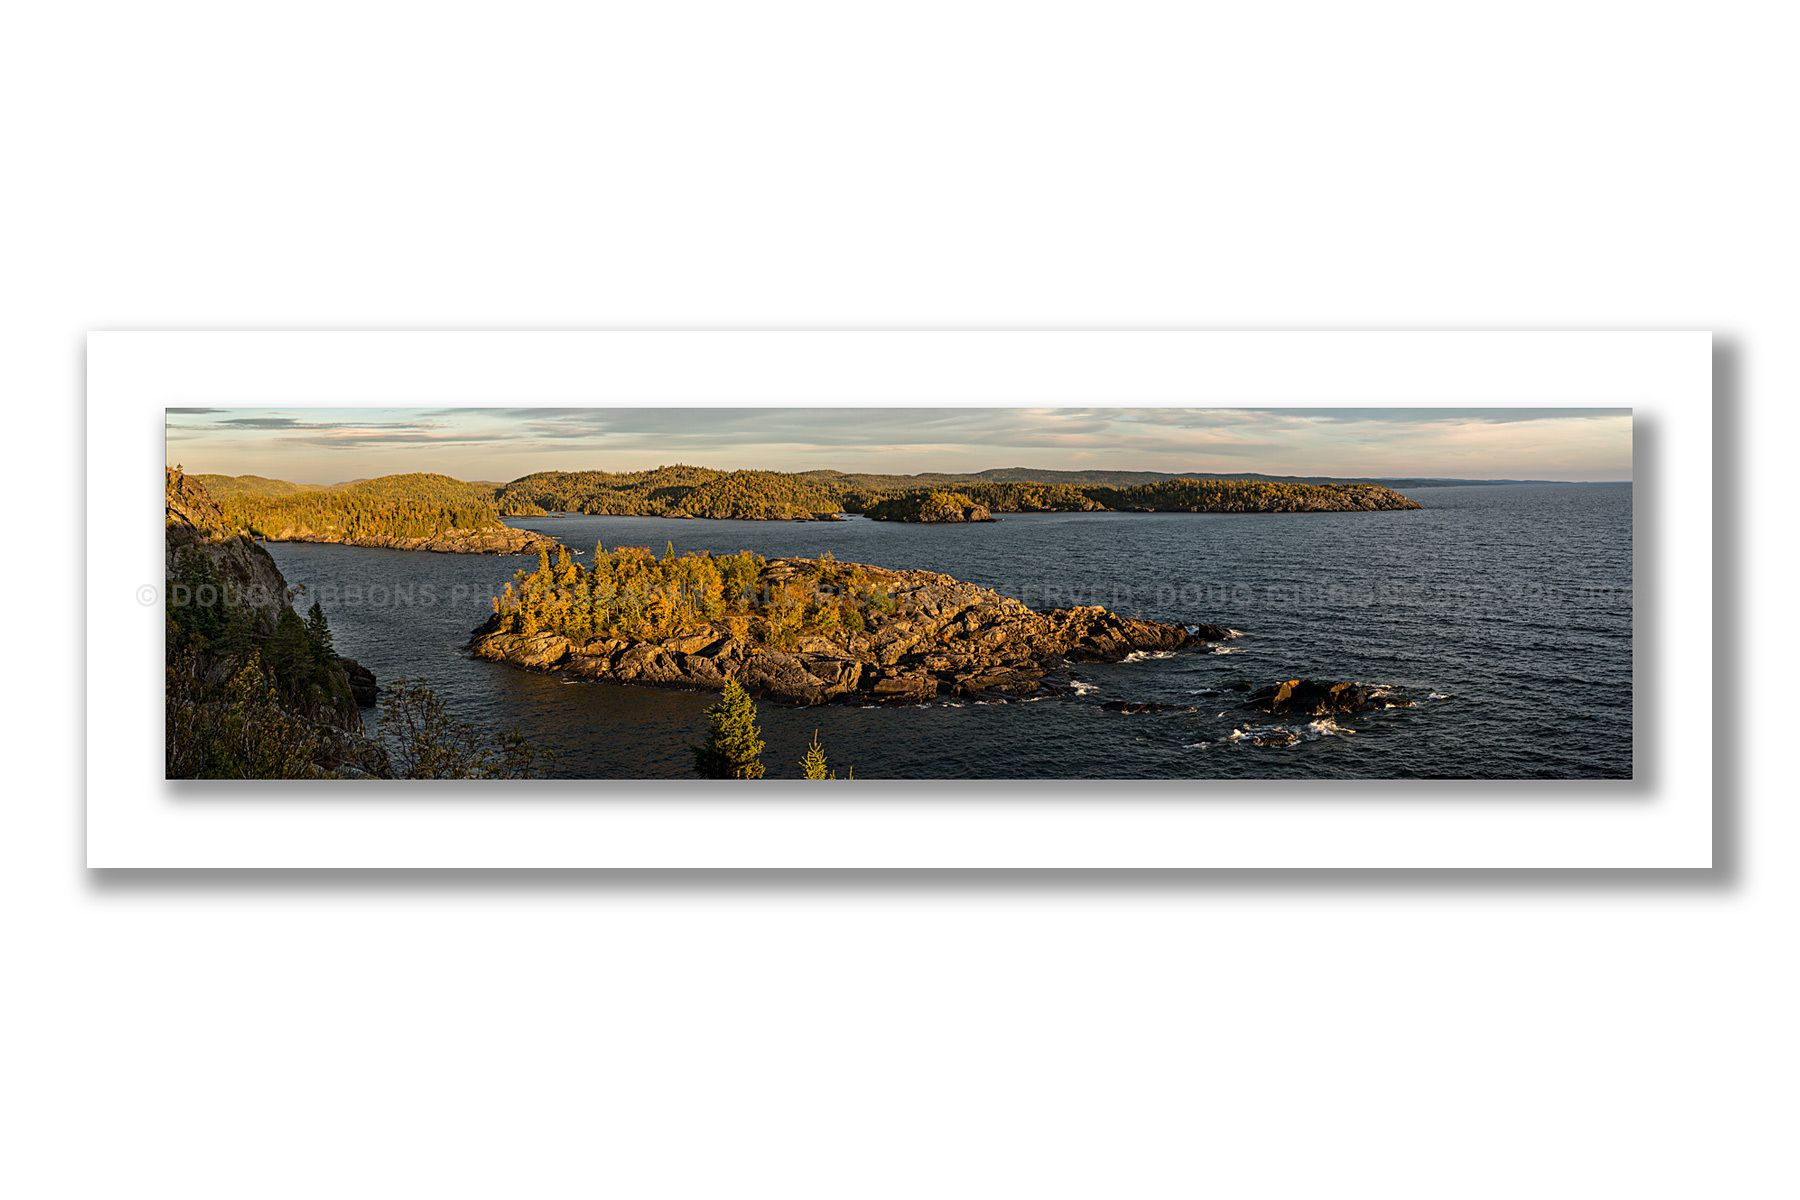 Shores of Pukaskwa